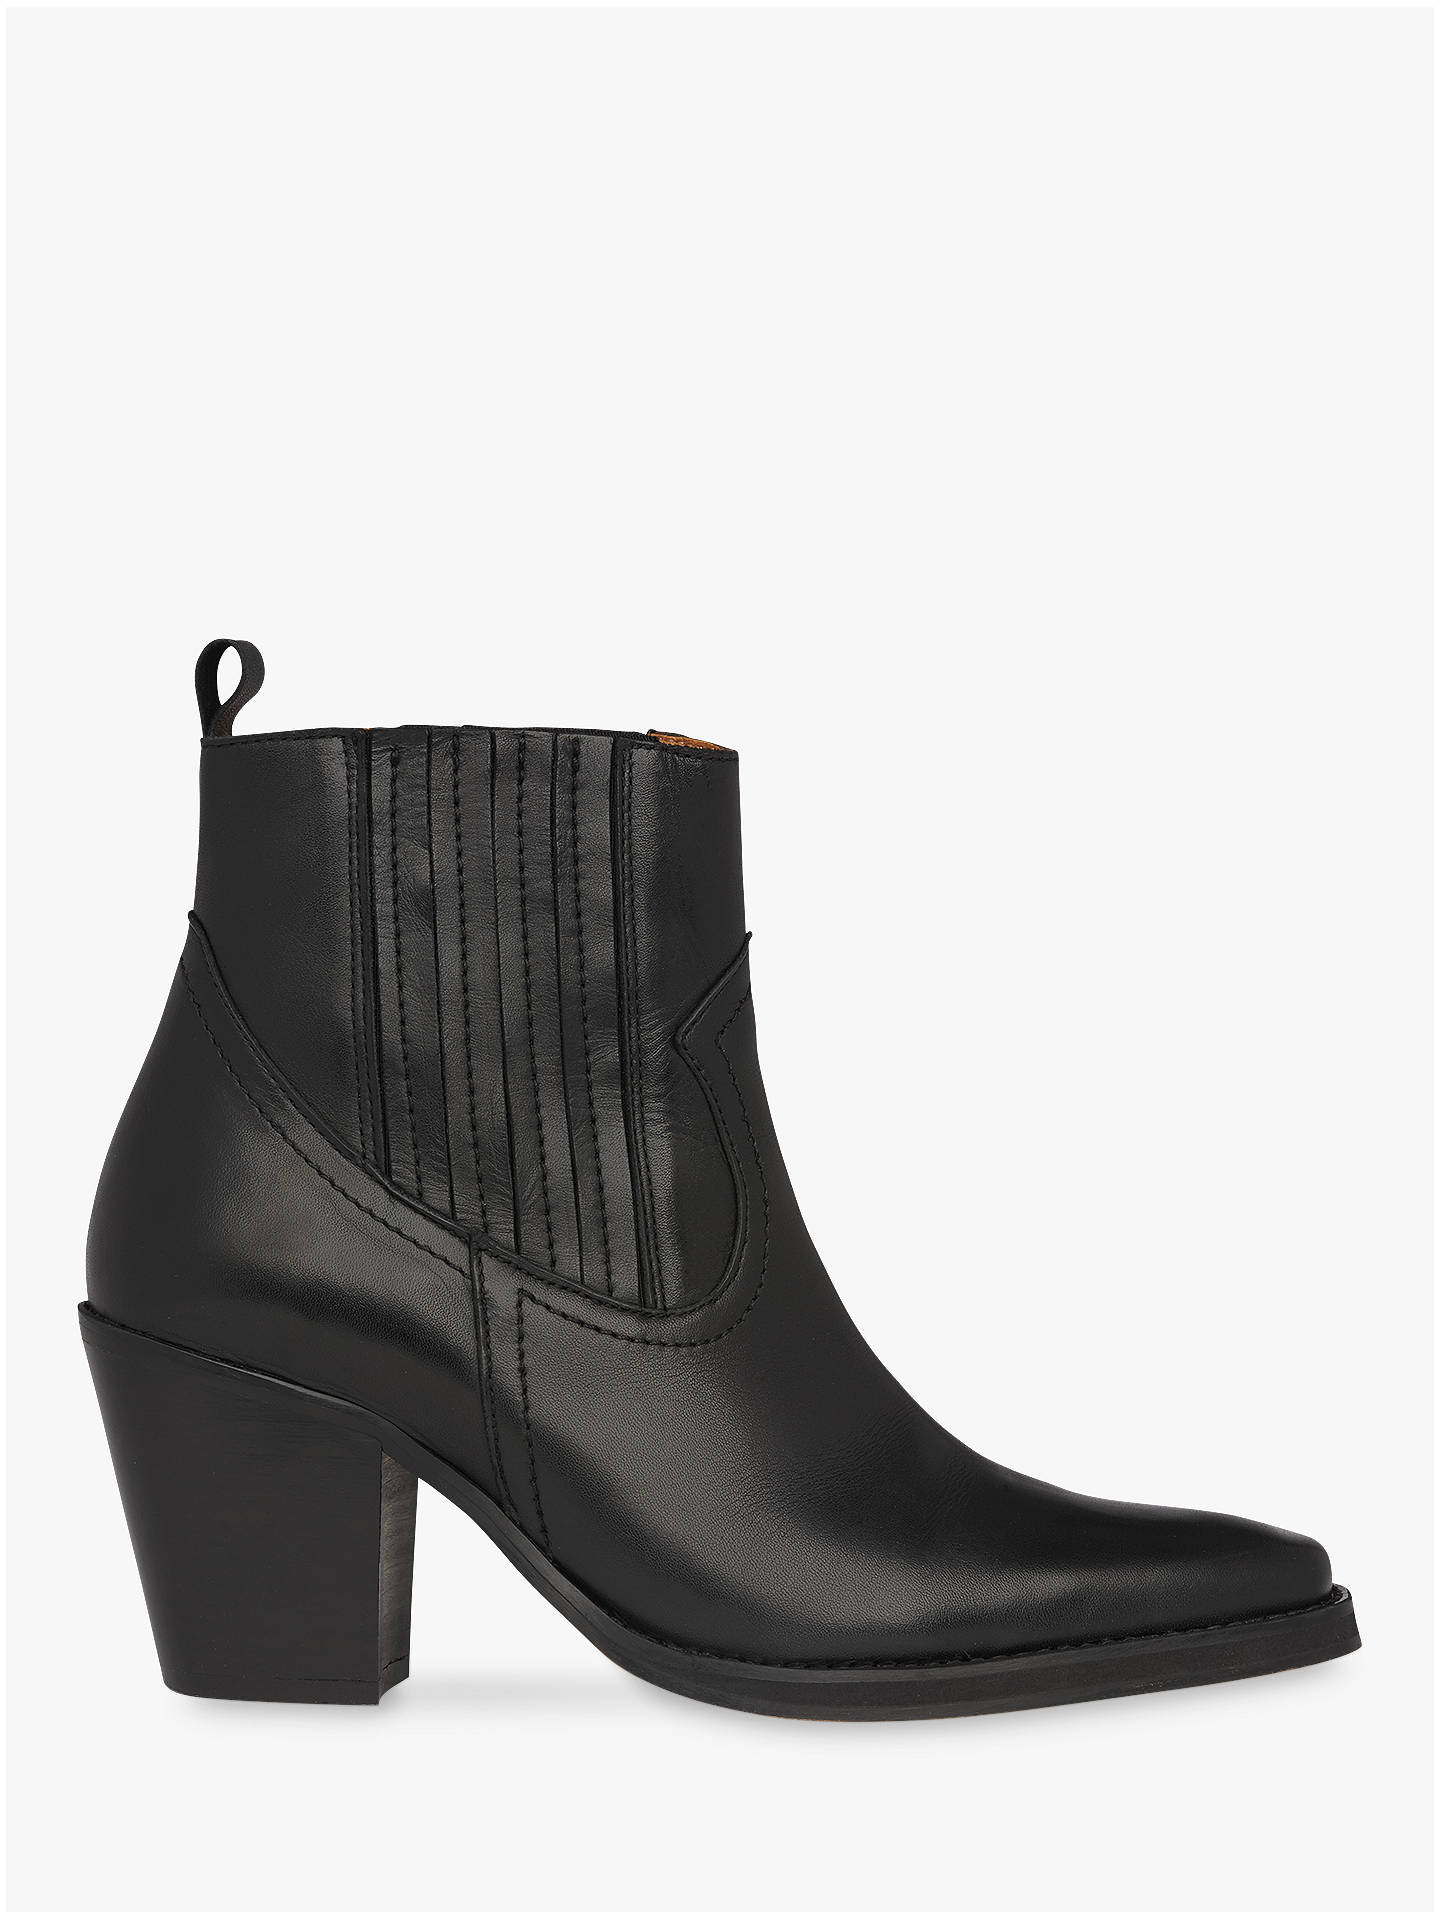 827a3ddd1e9 Whistles Allington Western Ankle Boots at John Lewis & Partners